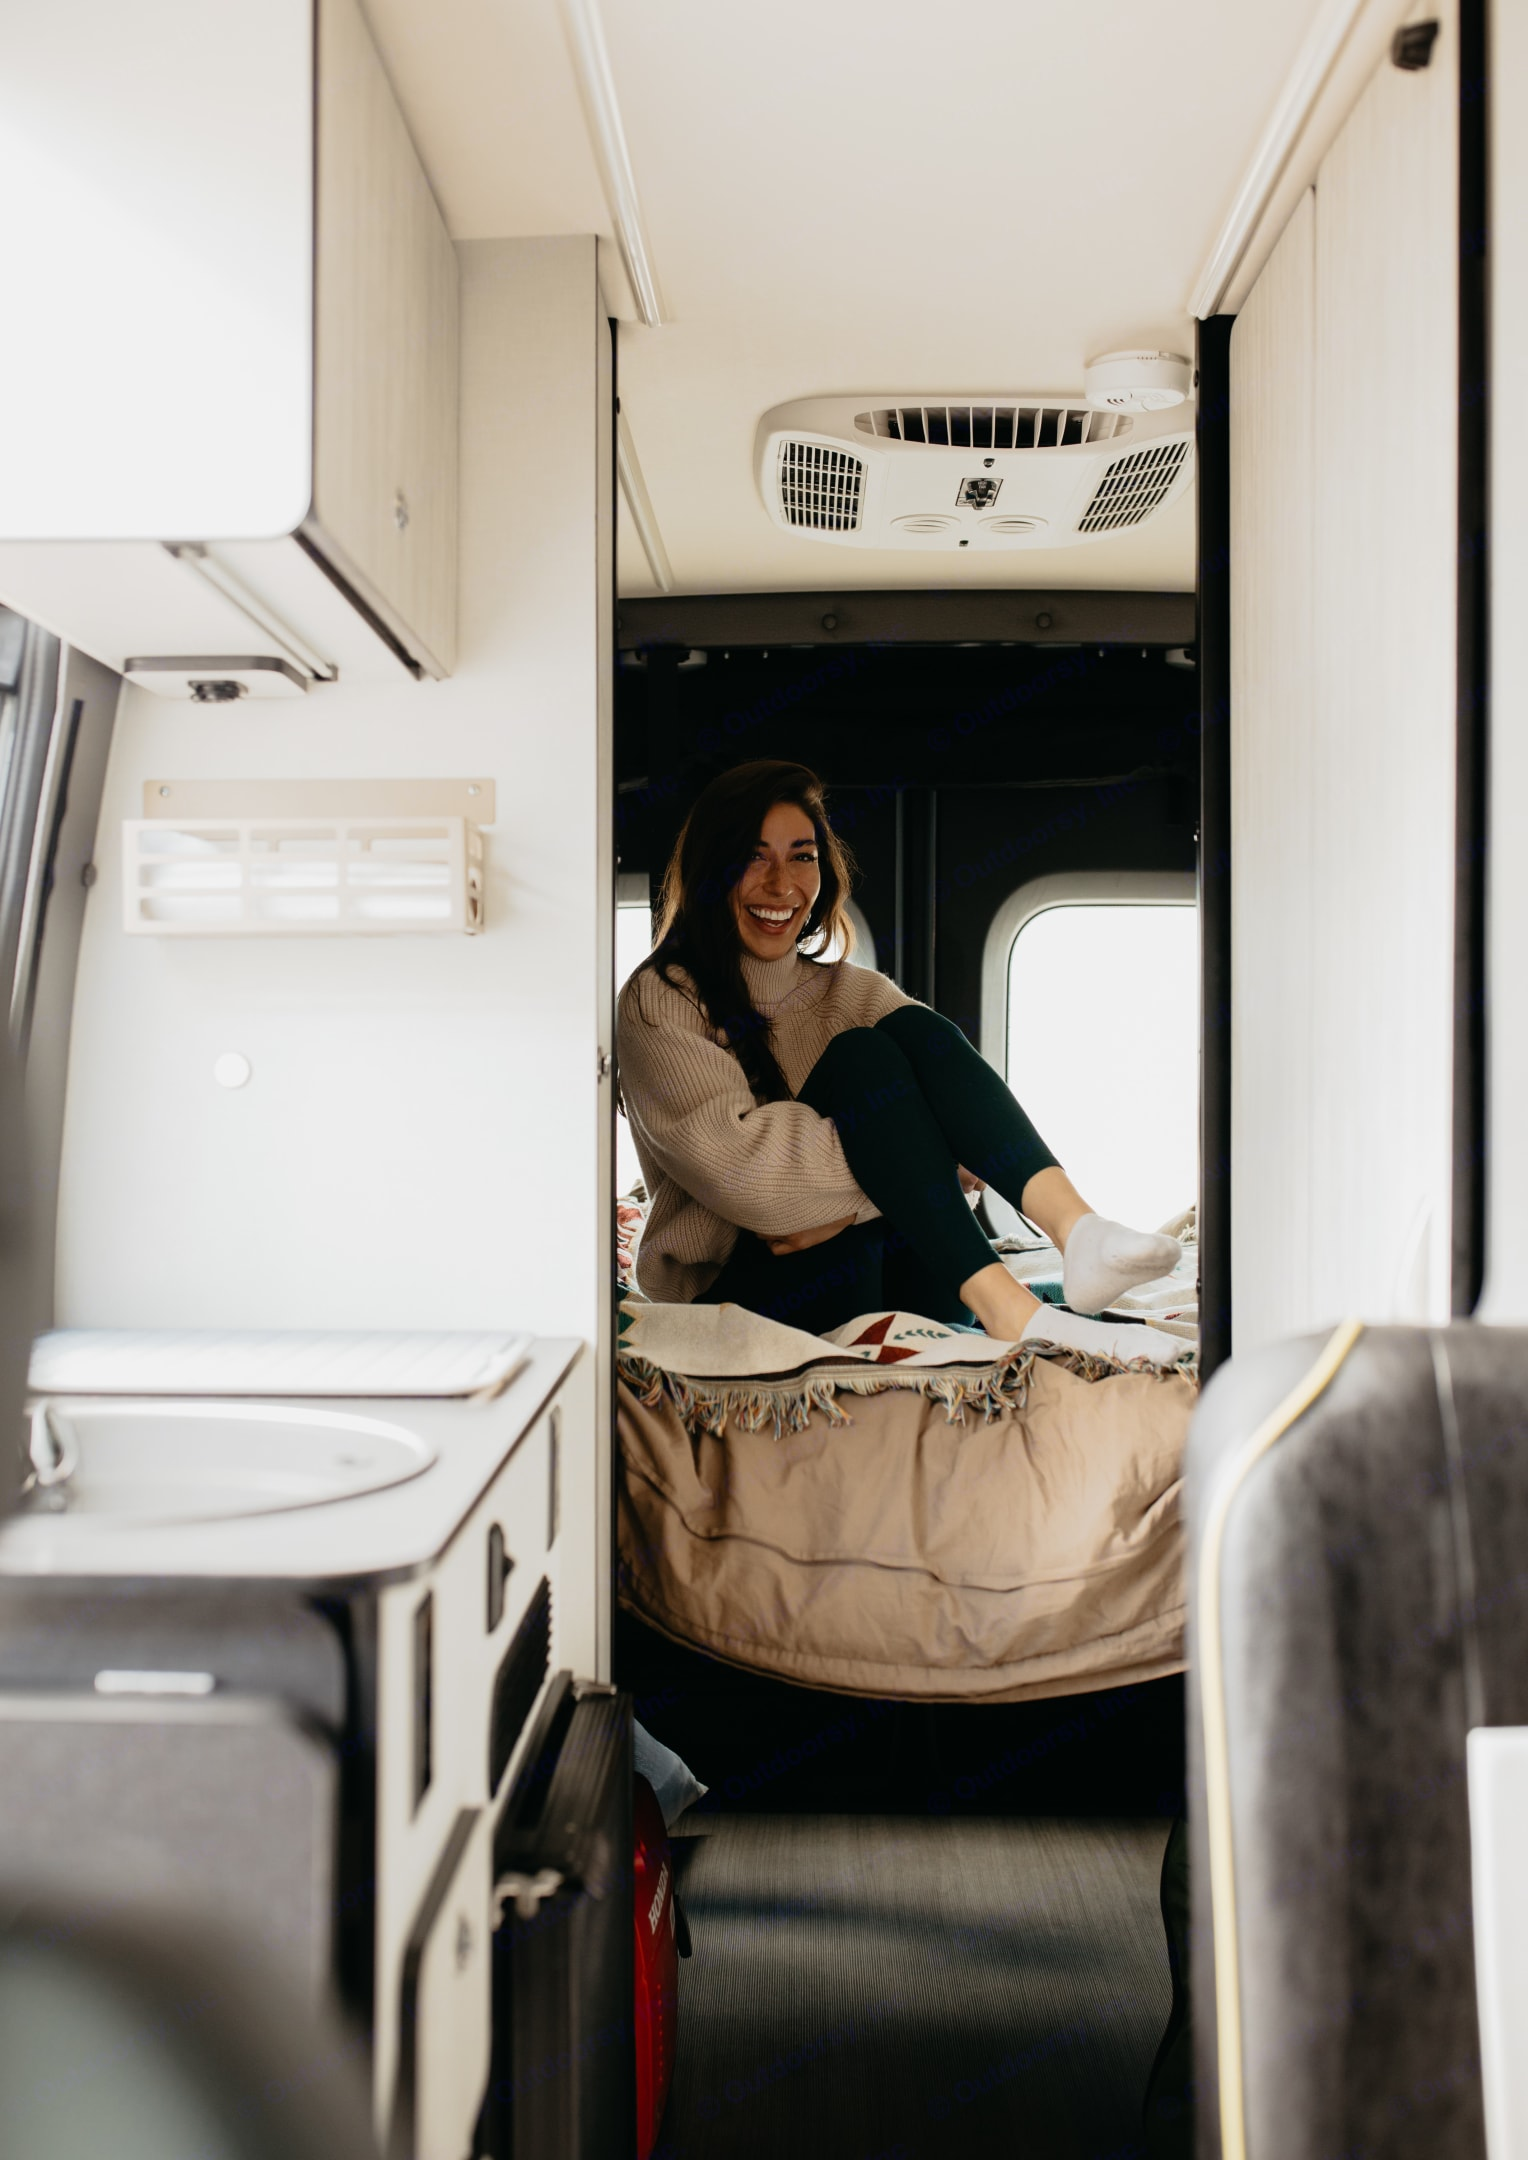 The platform bed adjusts in height to make room for larger items like bikes.. Winnebago Revel 2020